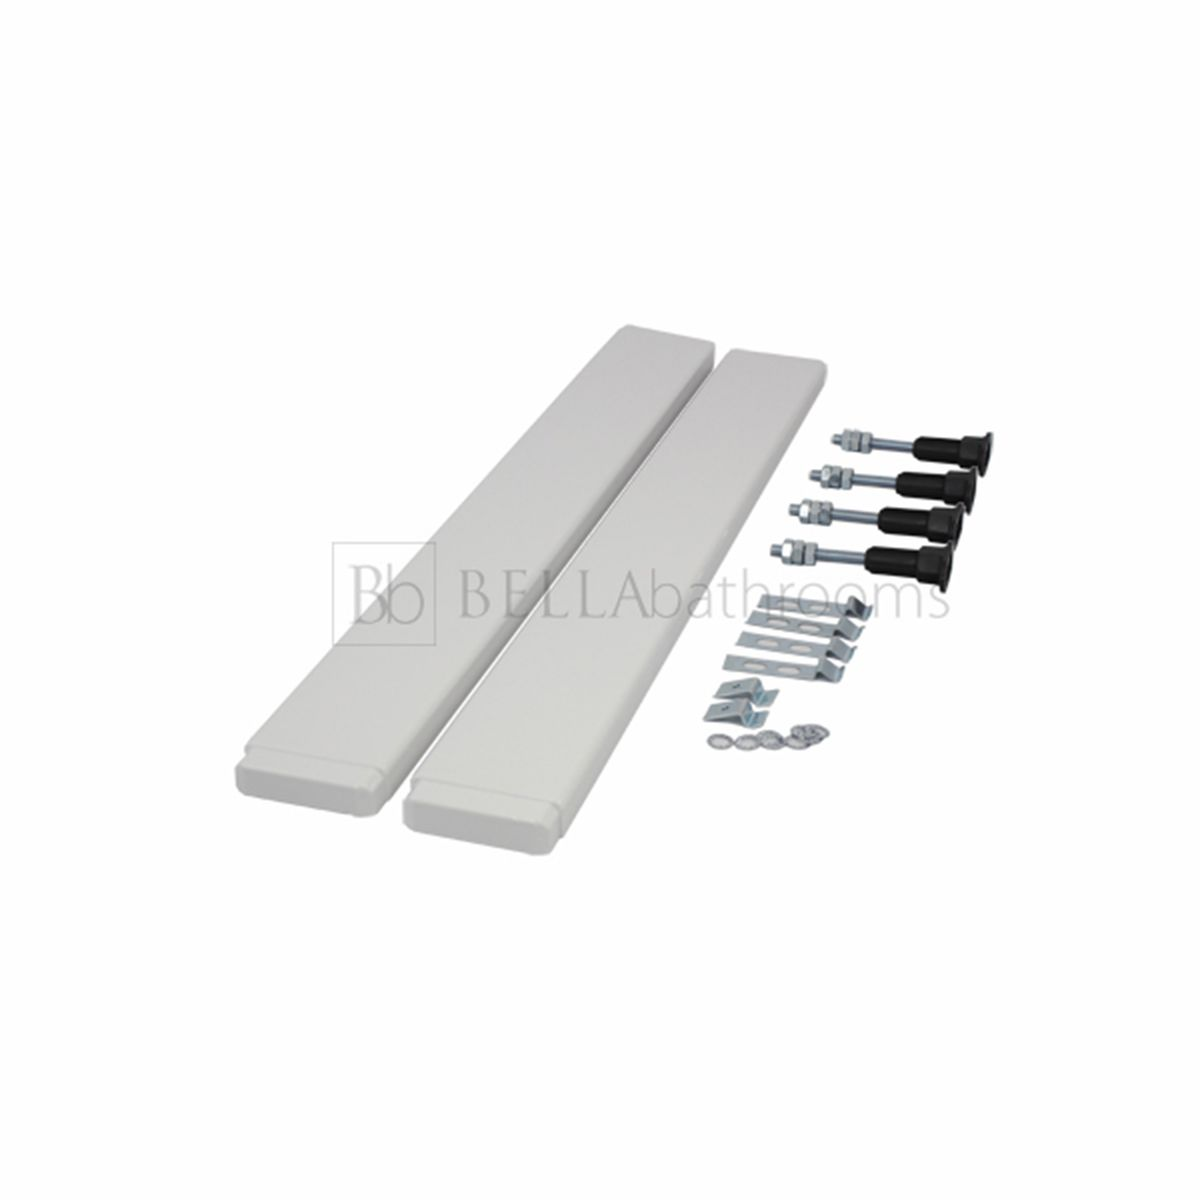 April Shower Tray Riser Kit 700 - 760